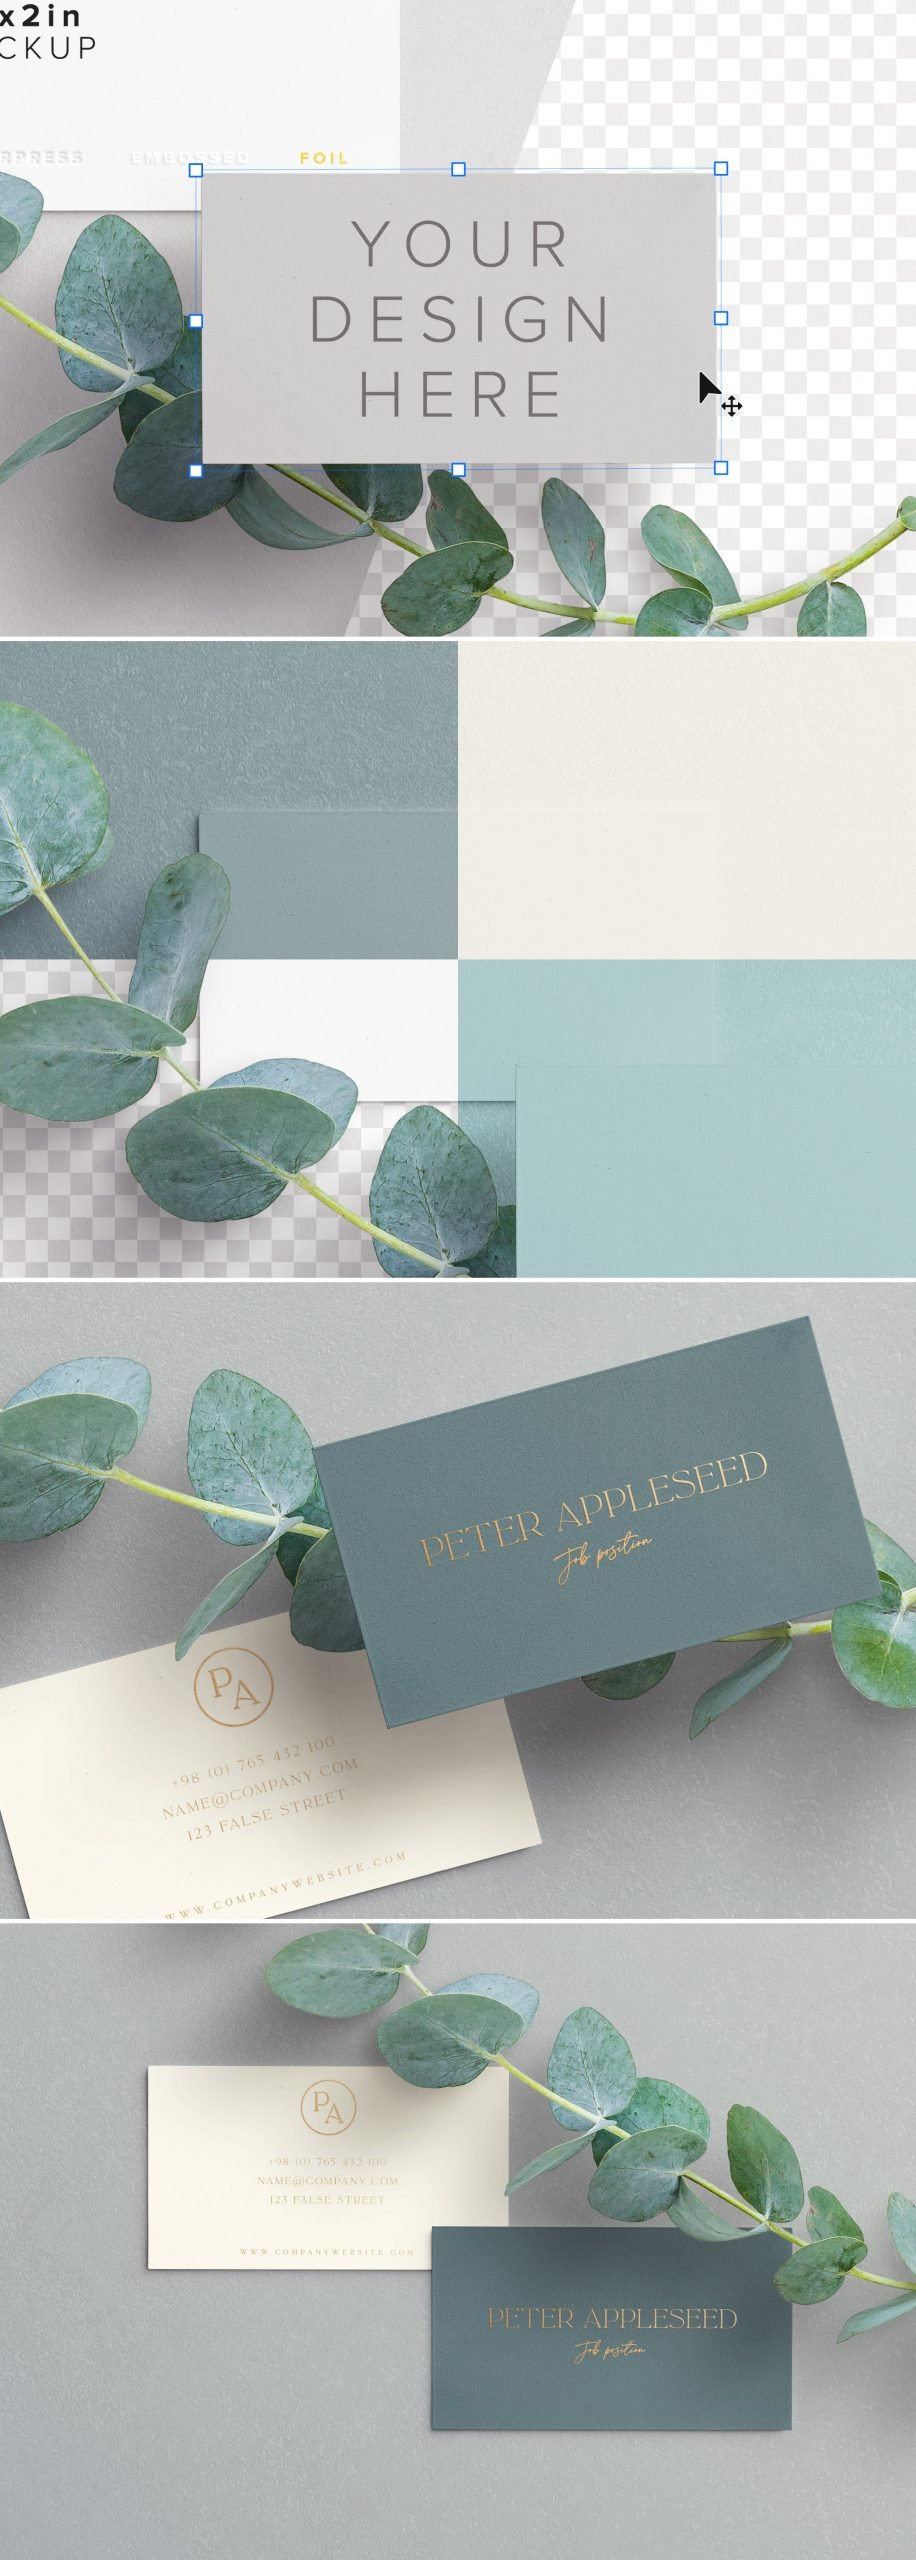 business cards layout 5 preview scaled